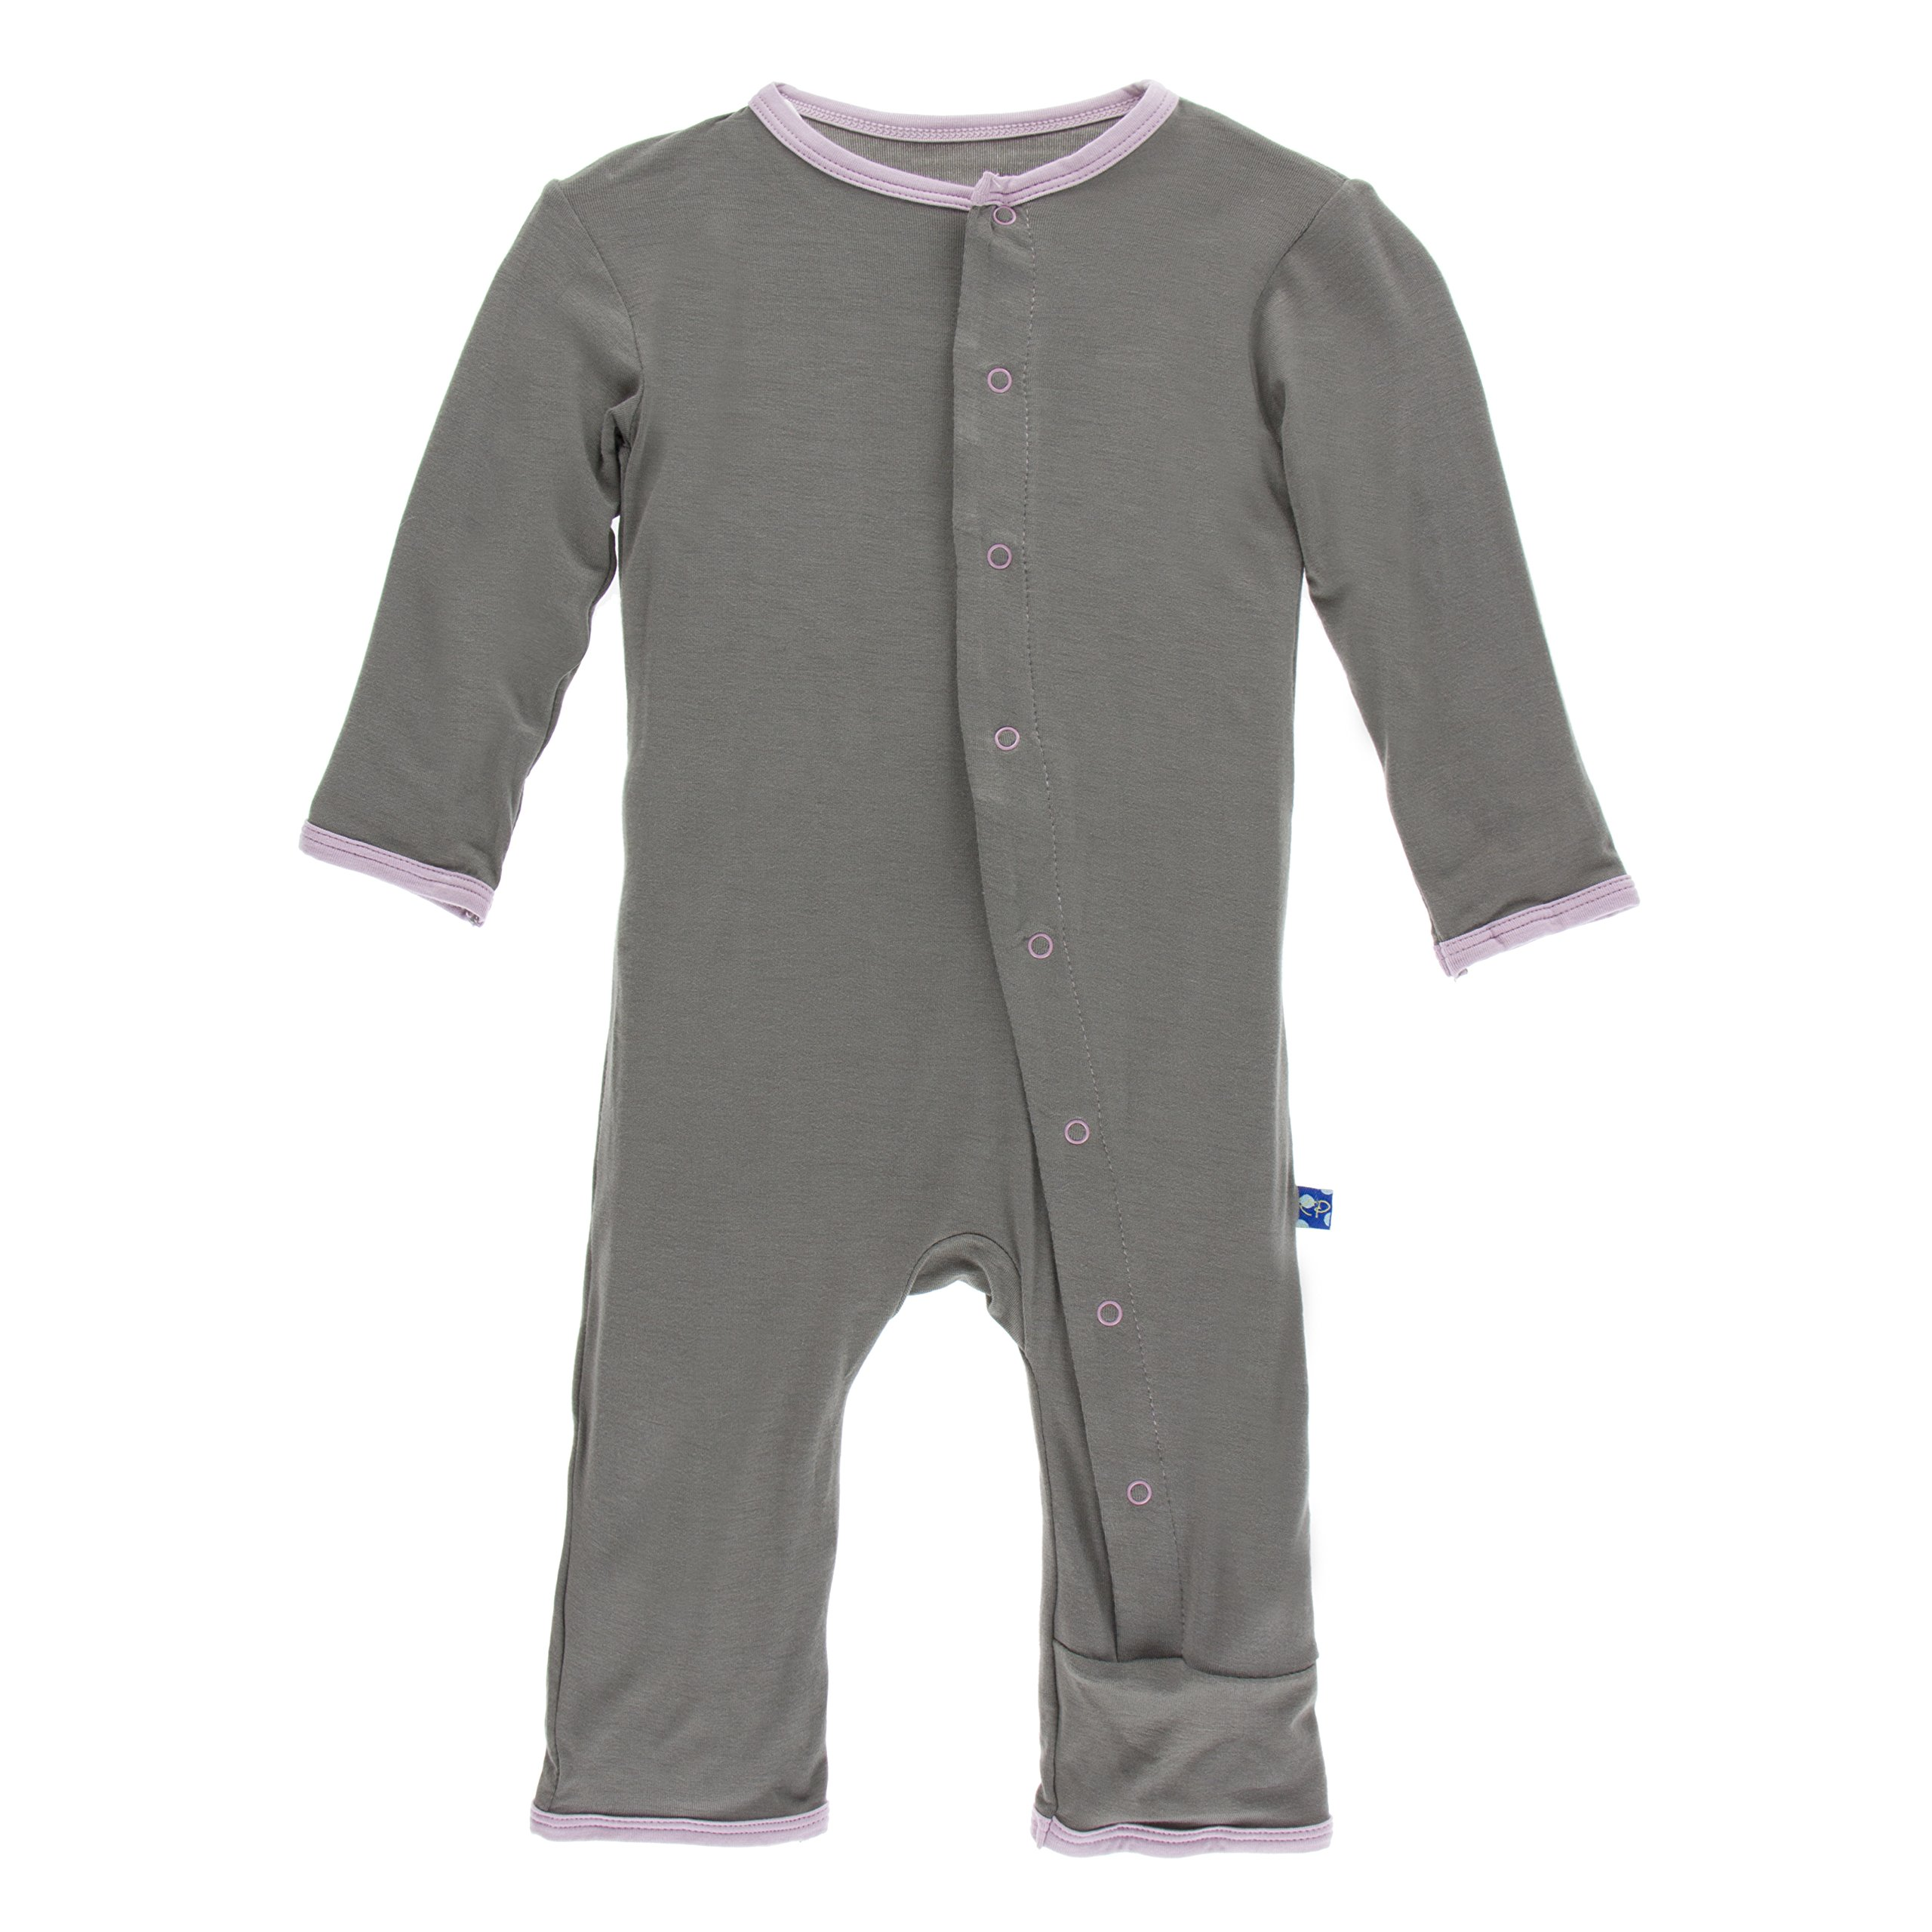 Kickee Pants Big Girls' Fitted Applique Coverall in Cobblestone Poodle, 2T